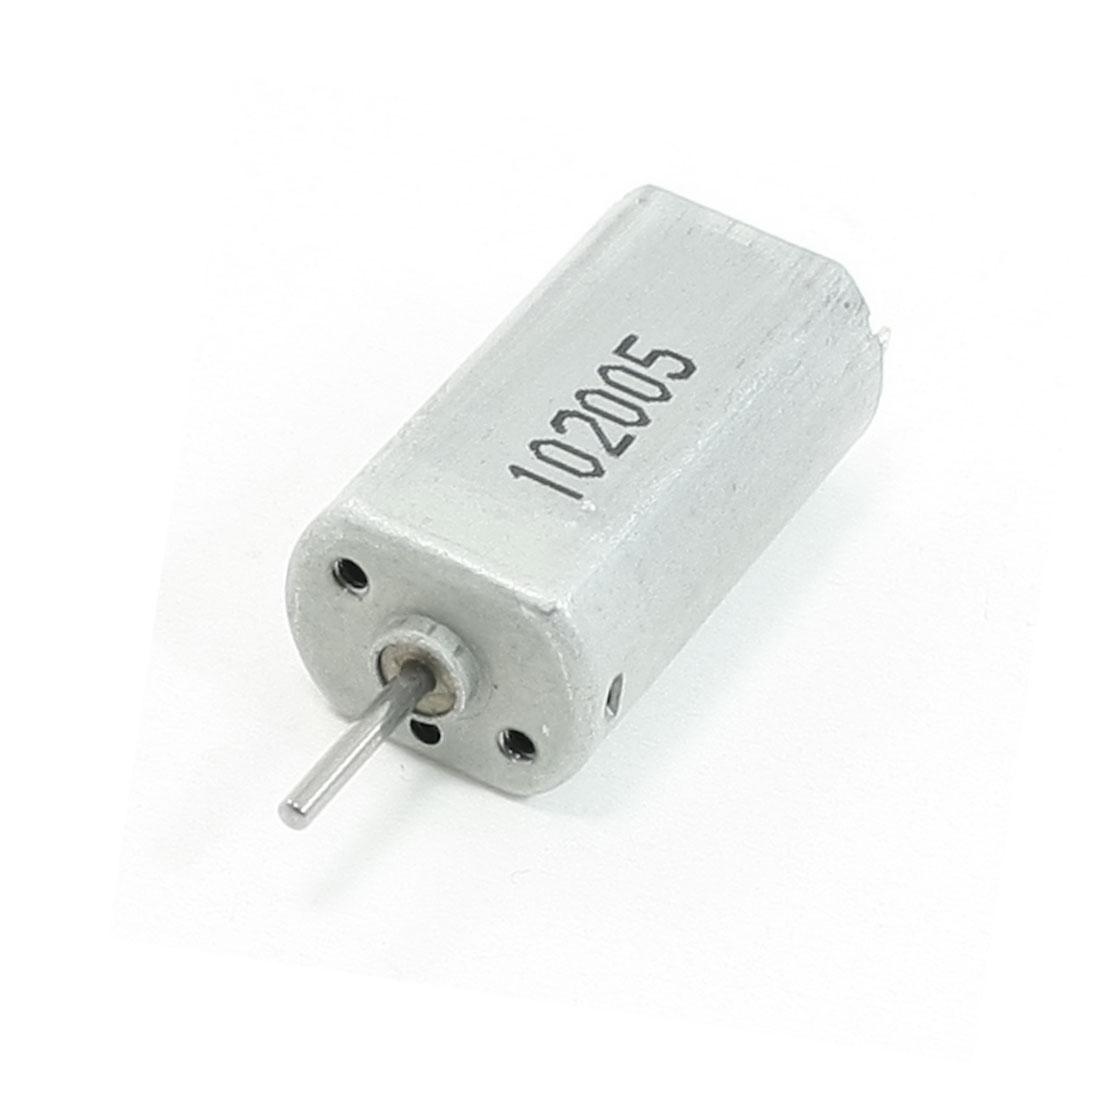 1000RPM-Rotary-Speed-DC-12V-High-Torque-1-5mm-Dia-Shaft-Magnetic-Geared-Motor